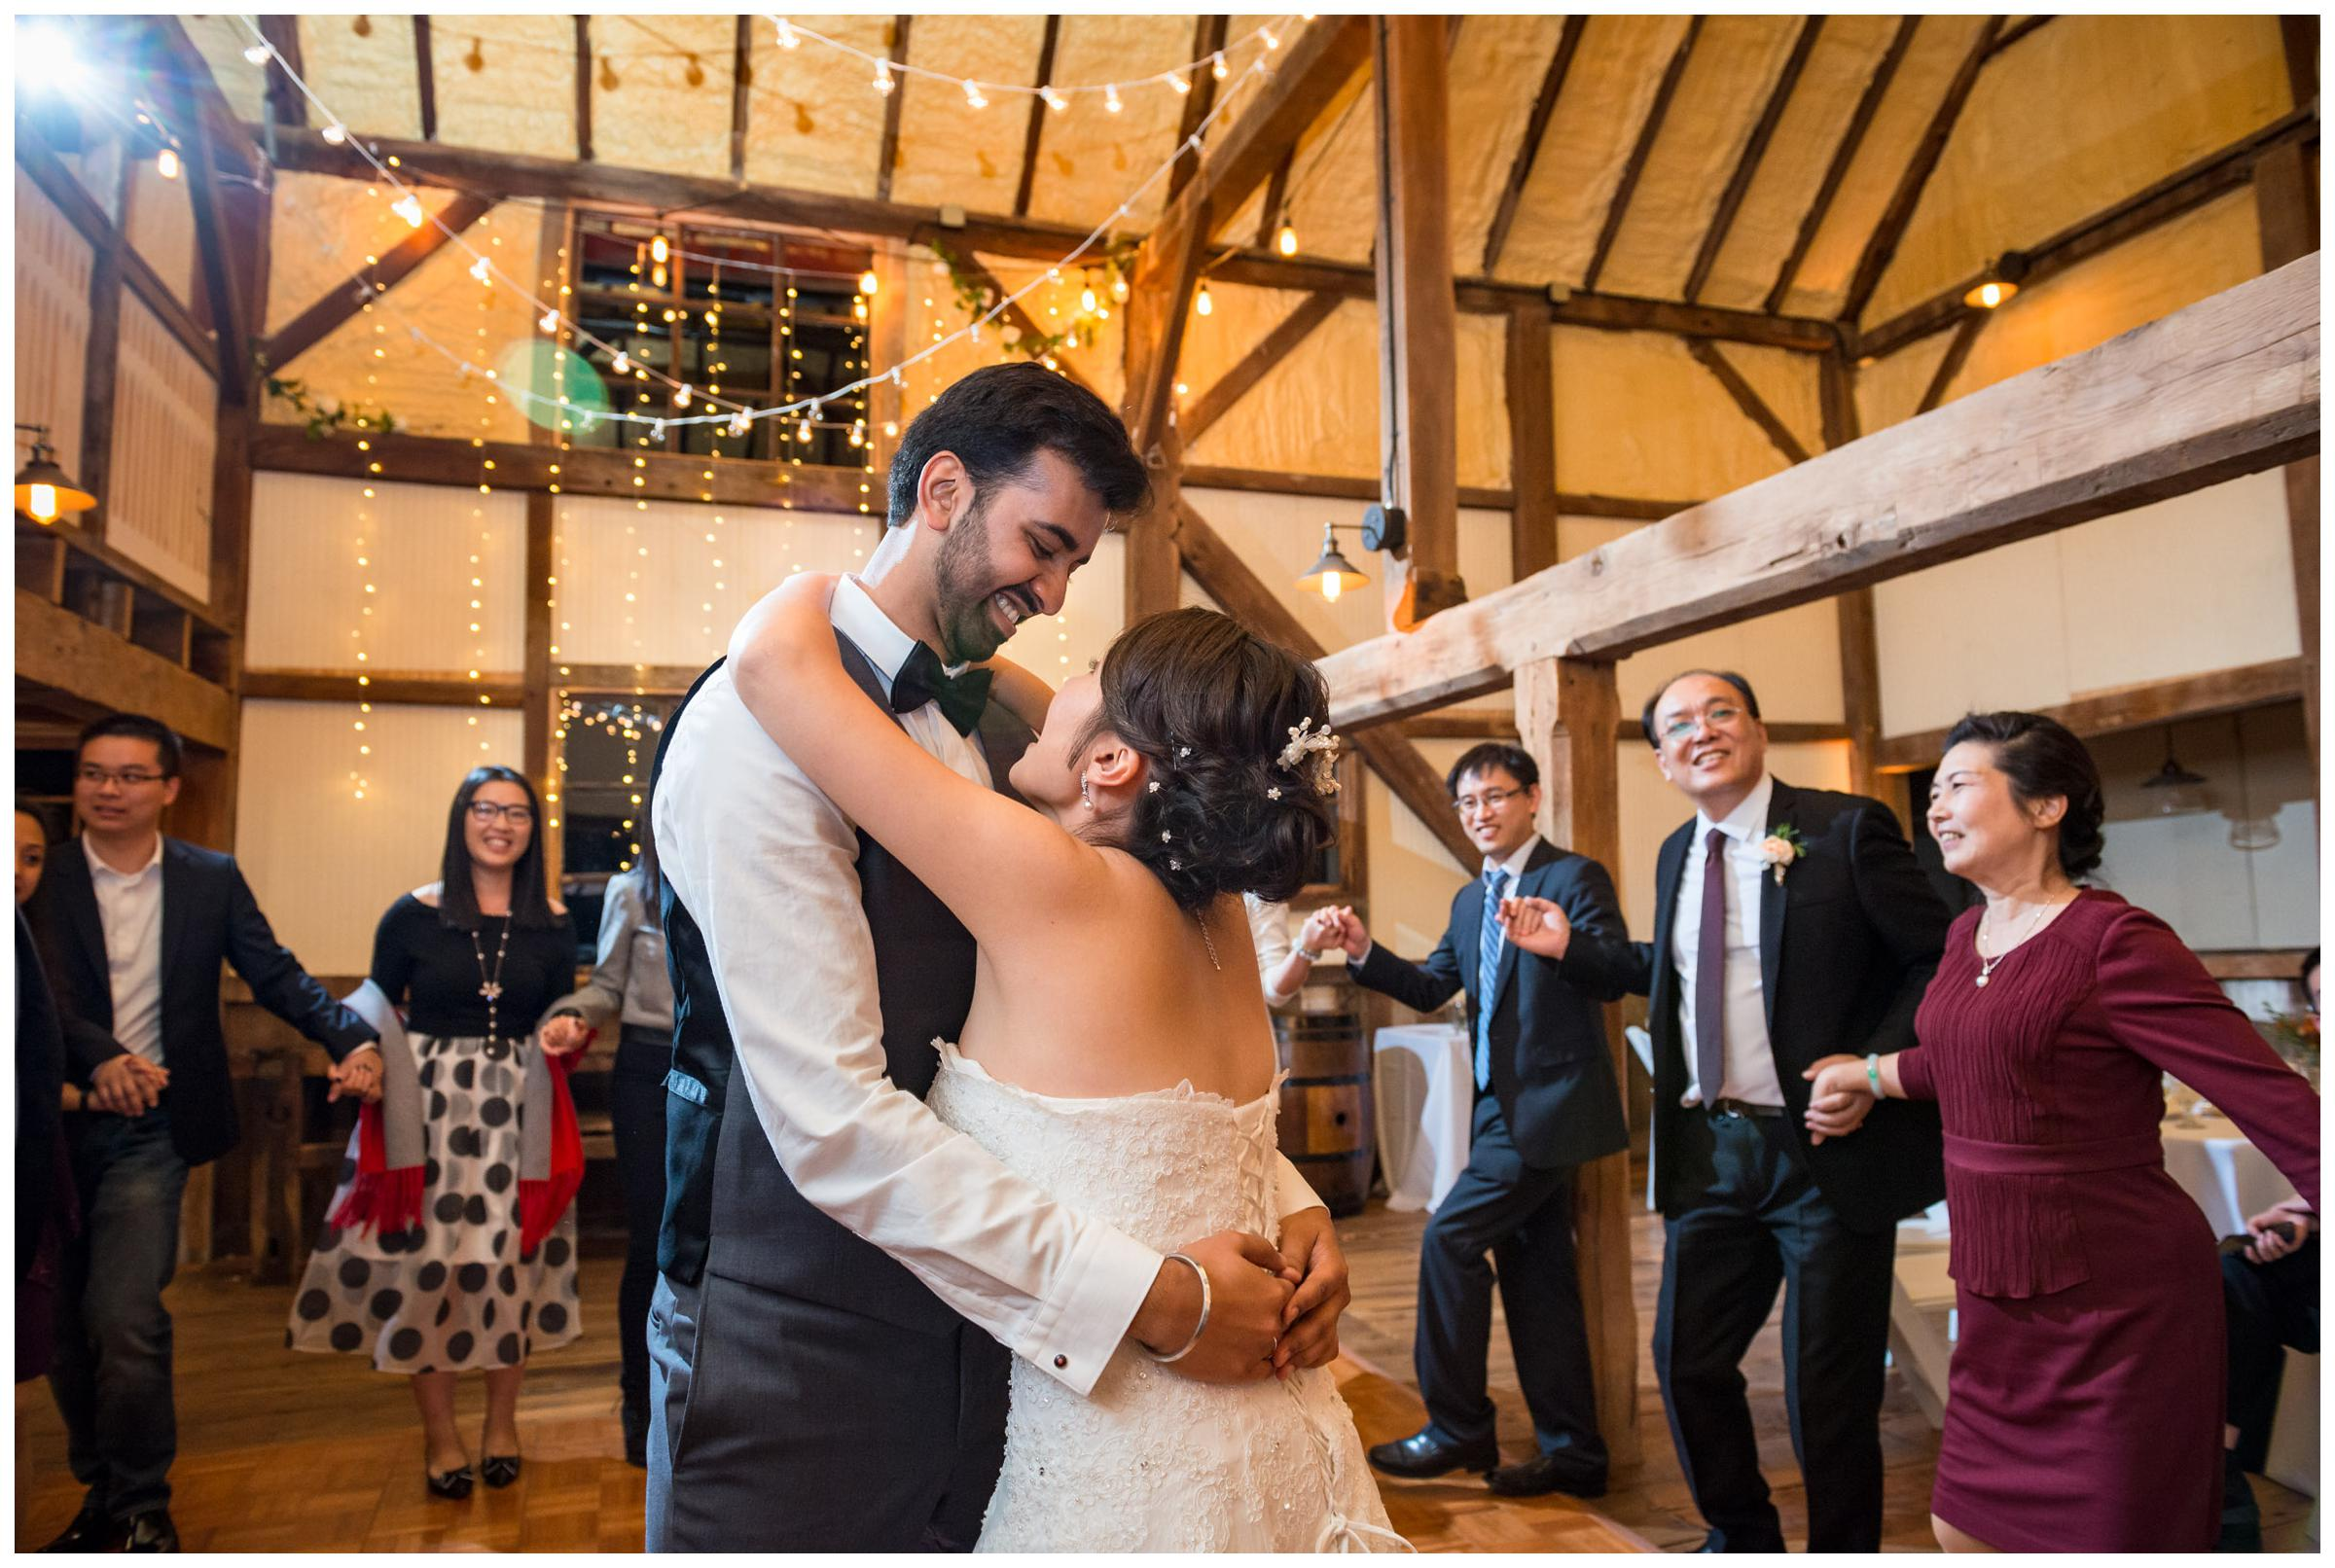 Bride and groom dancing during their rustic barn wedding reception.